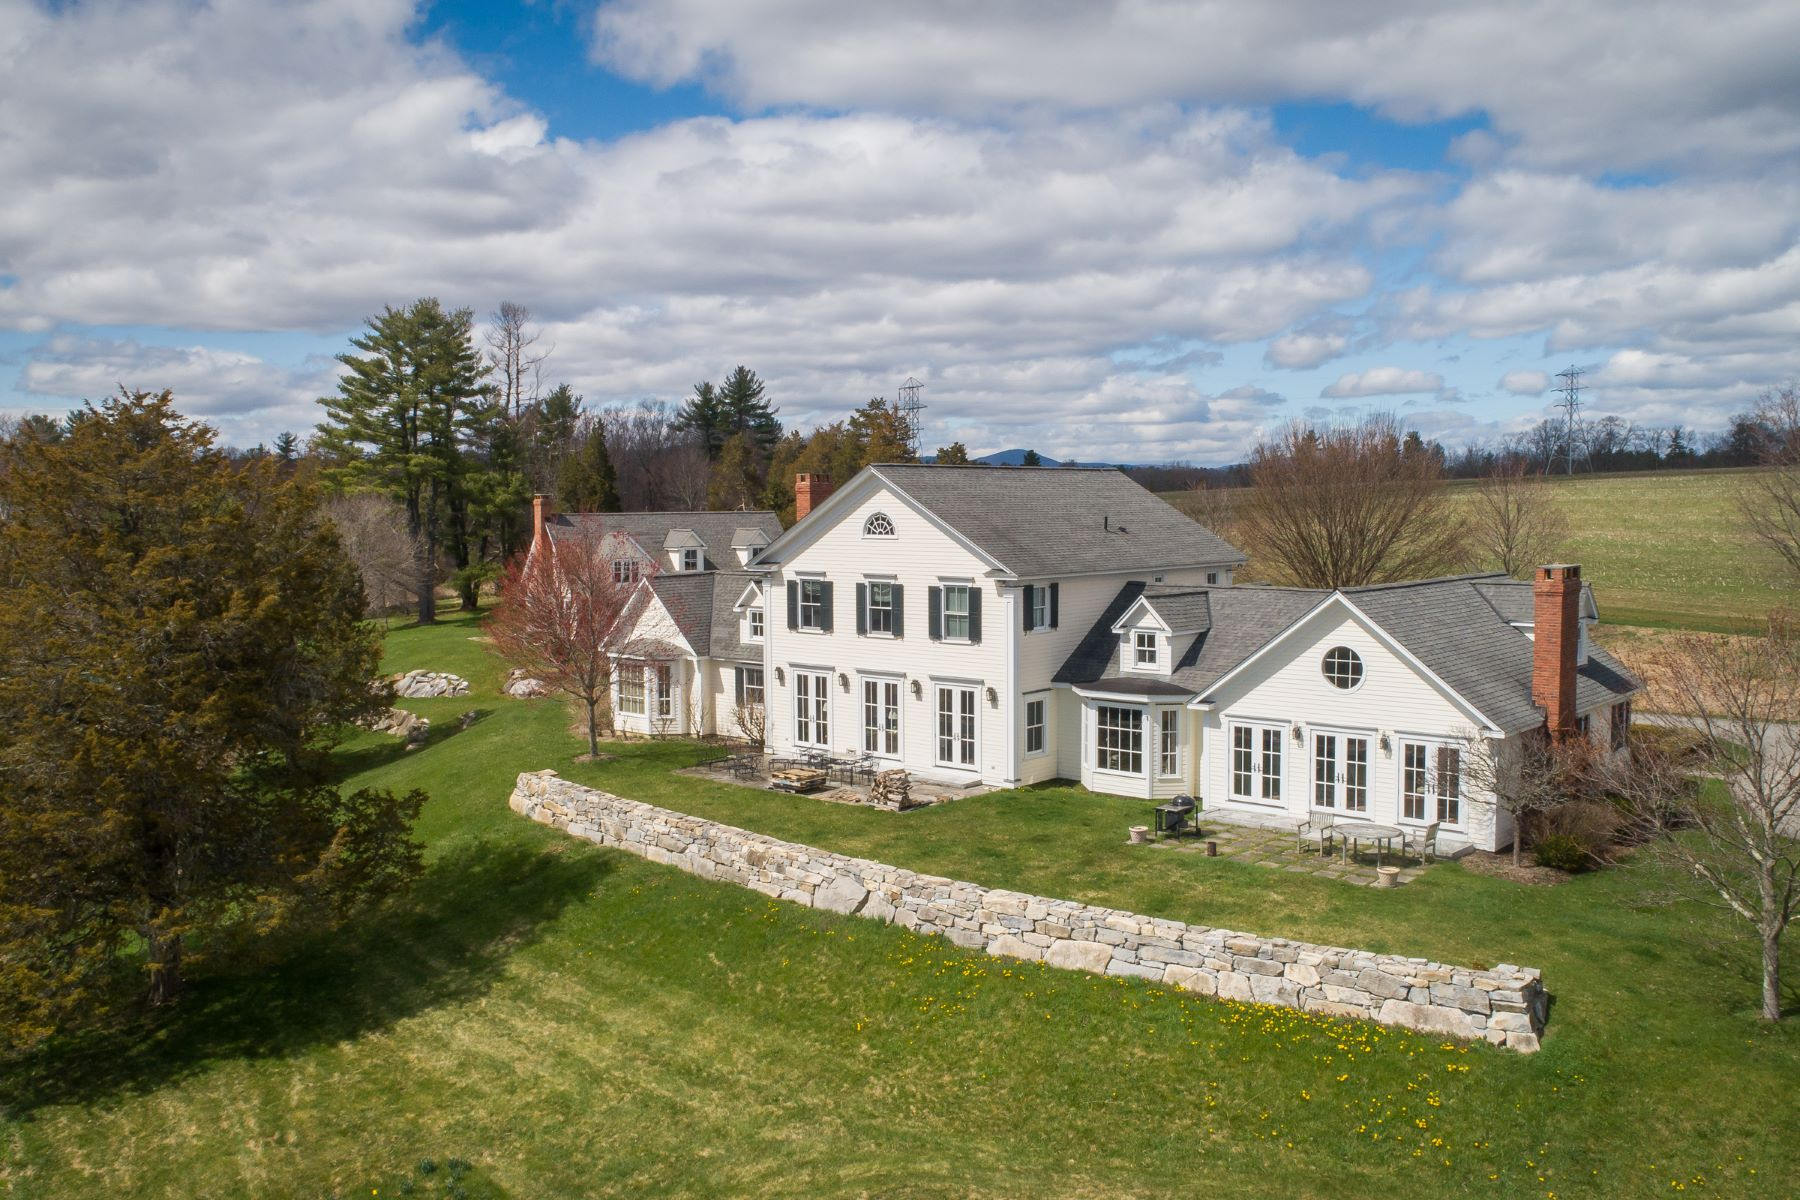 Single Family Homes のために 売買 アット BEAUTIFUL LAKEVILLE ESTATE 180 Lime Rock Road, Salisbury, コネチカット 06039 アメリカ